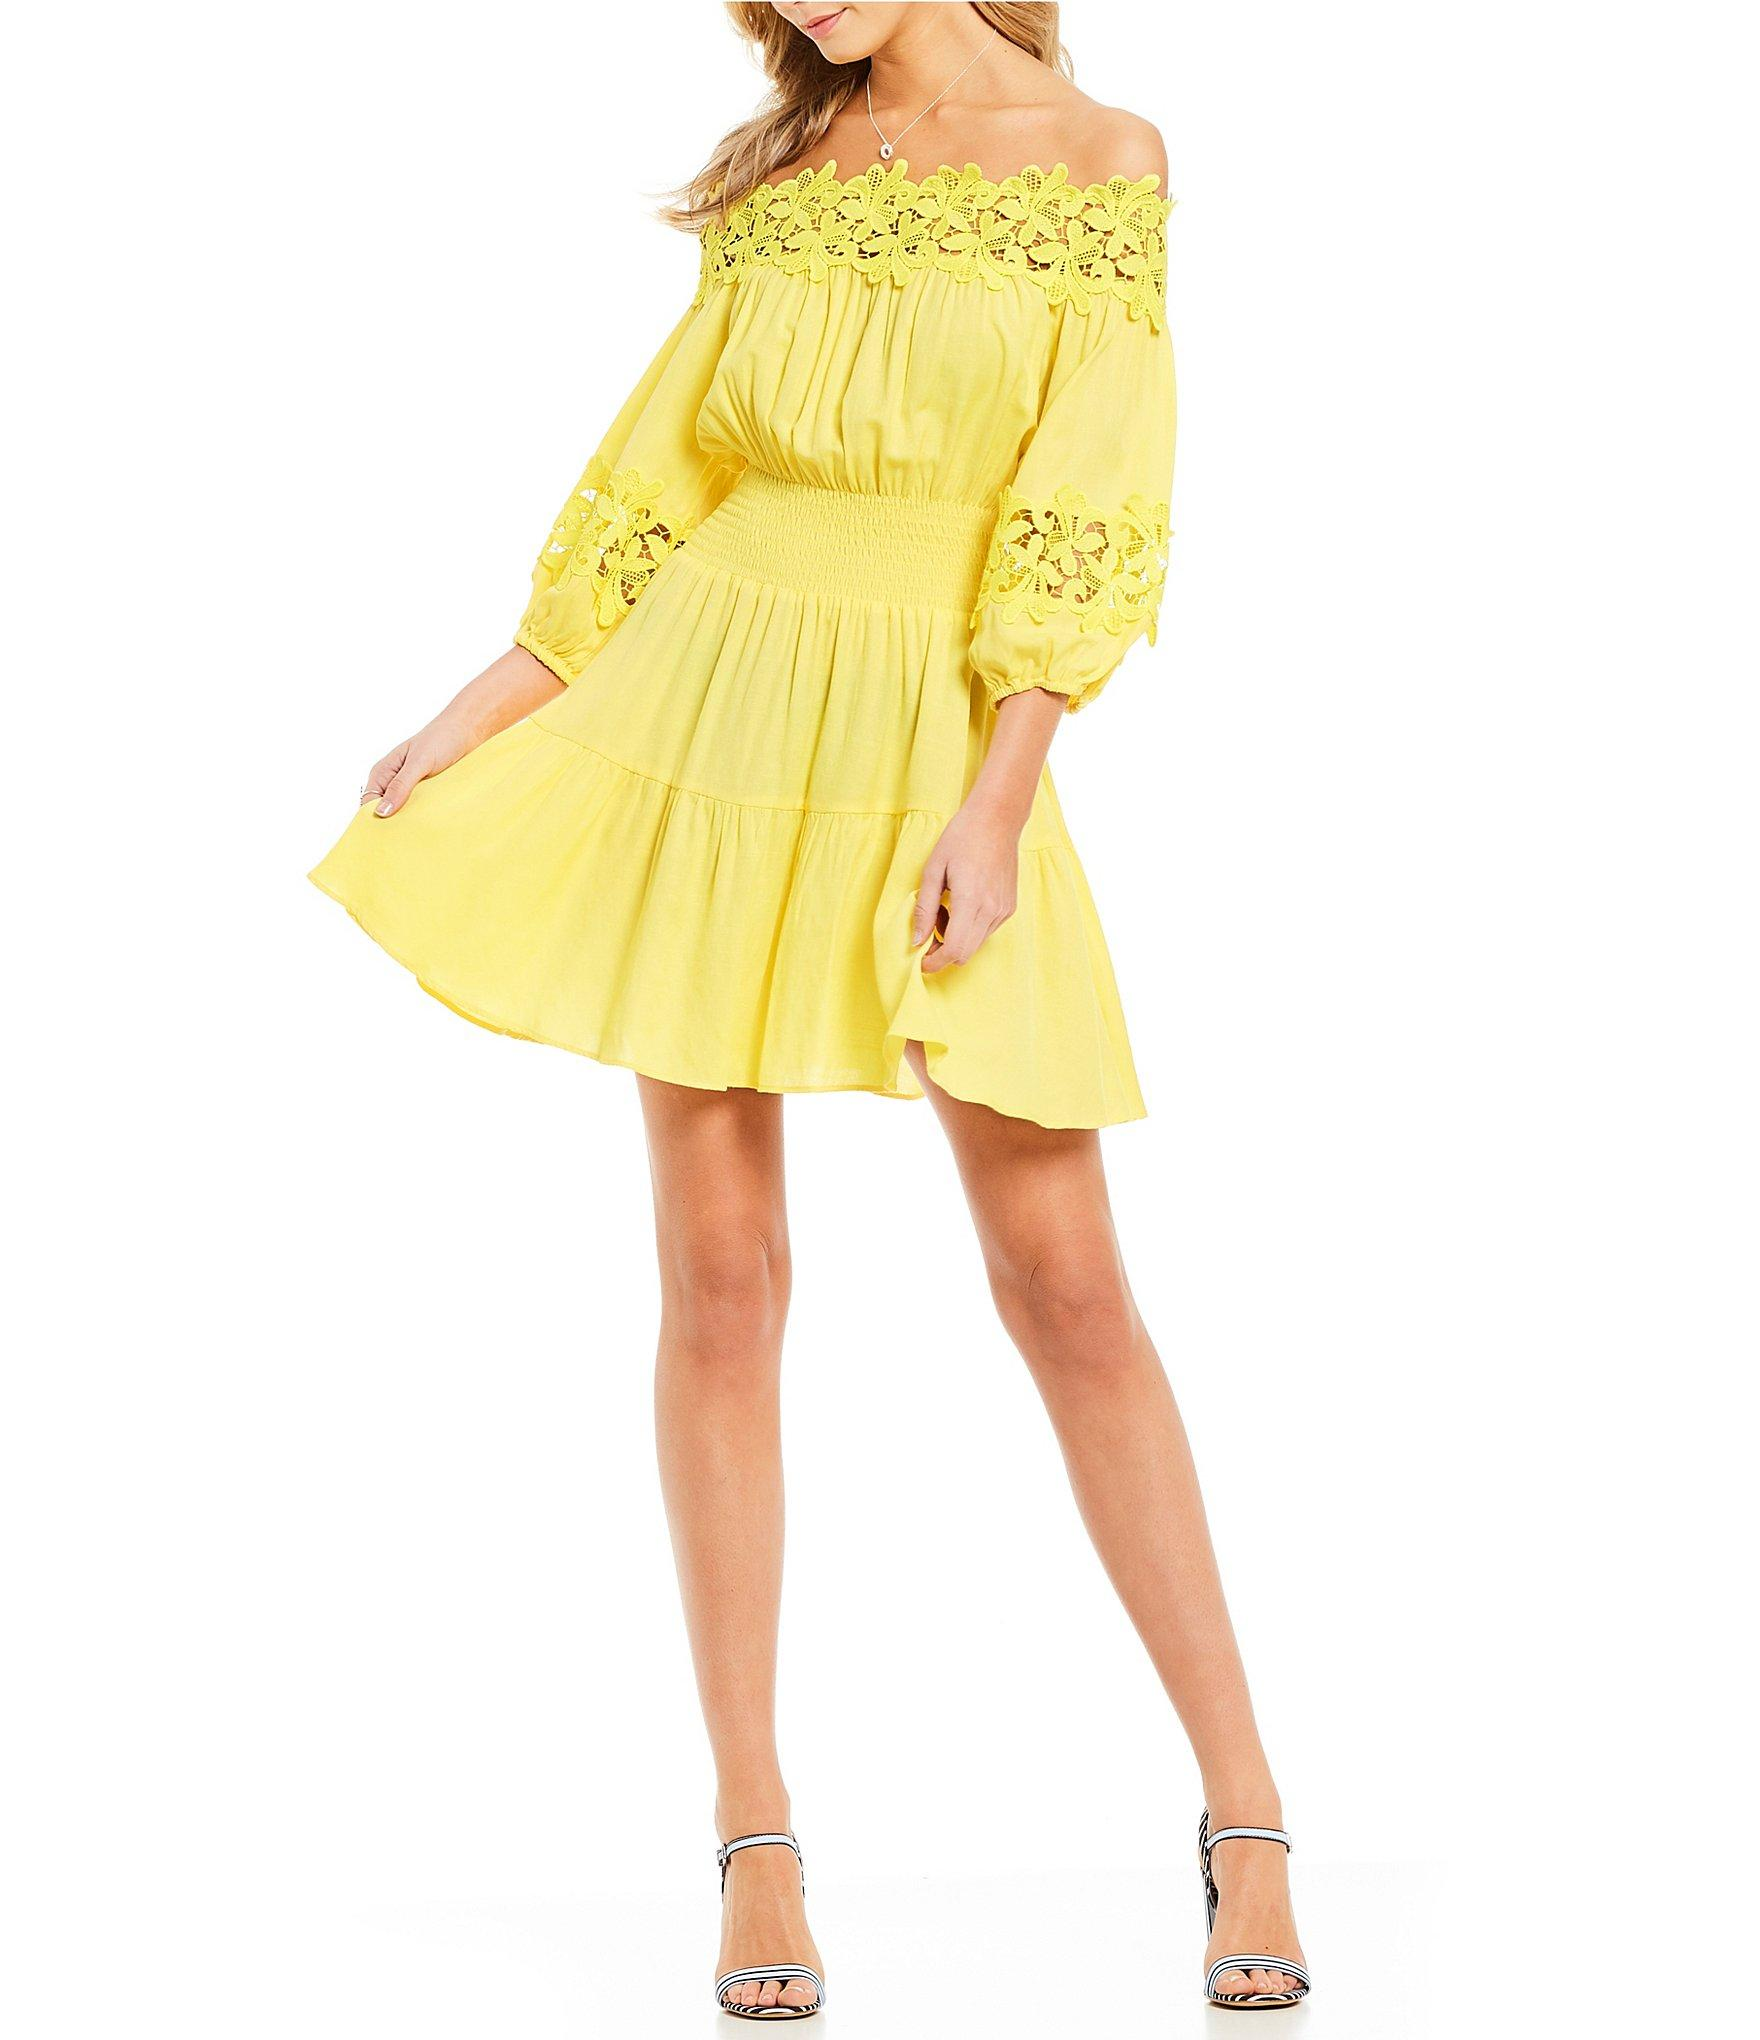 2cfc162db43 Gianni Bini Jason Off-the-shoulder Smocked Dress in Yellow - Lyst